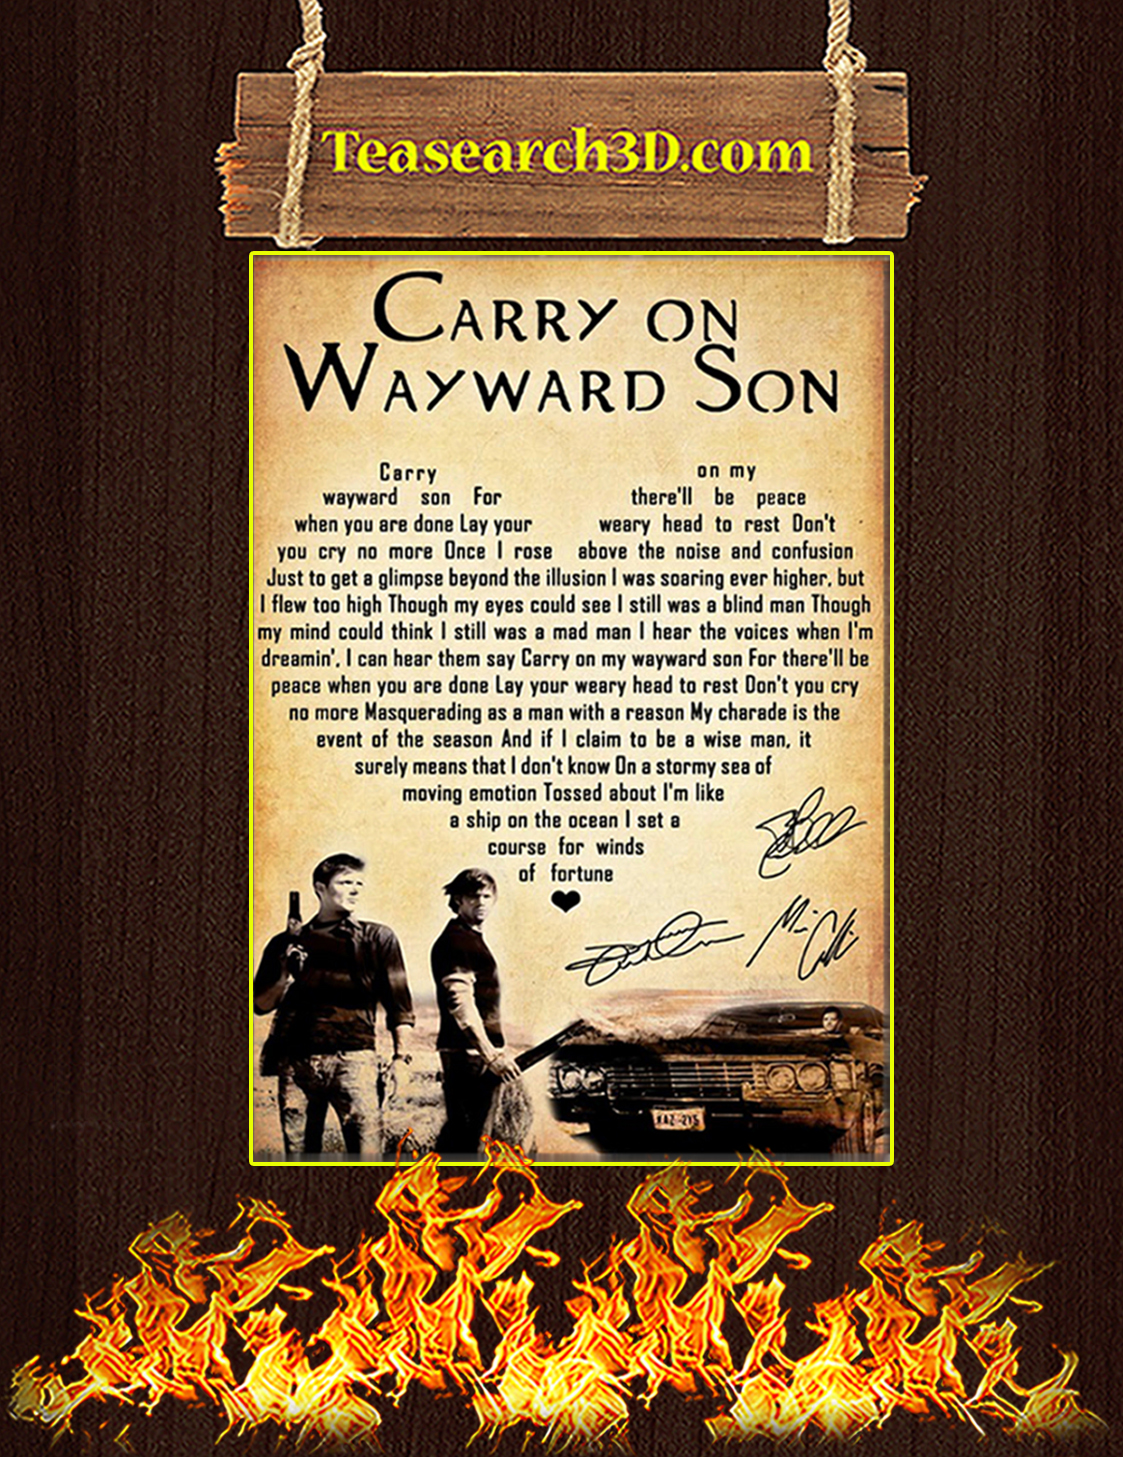 Supernatural carry on my wayward son signature poster A3